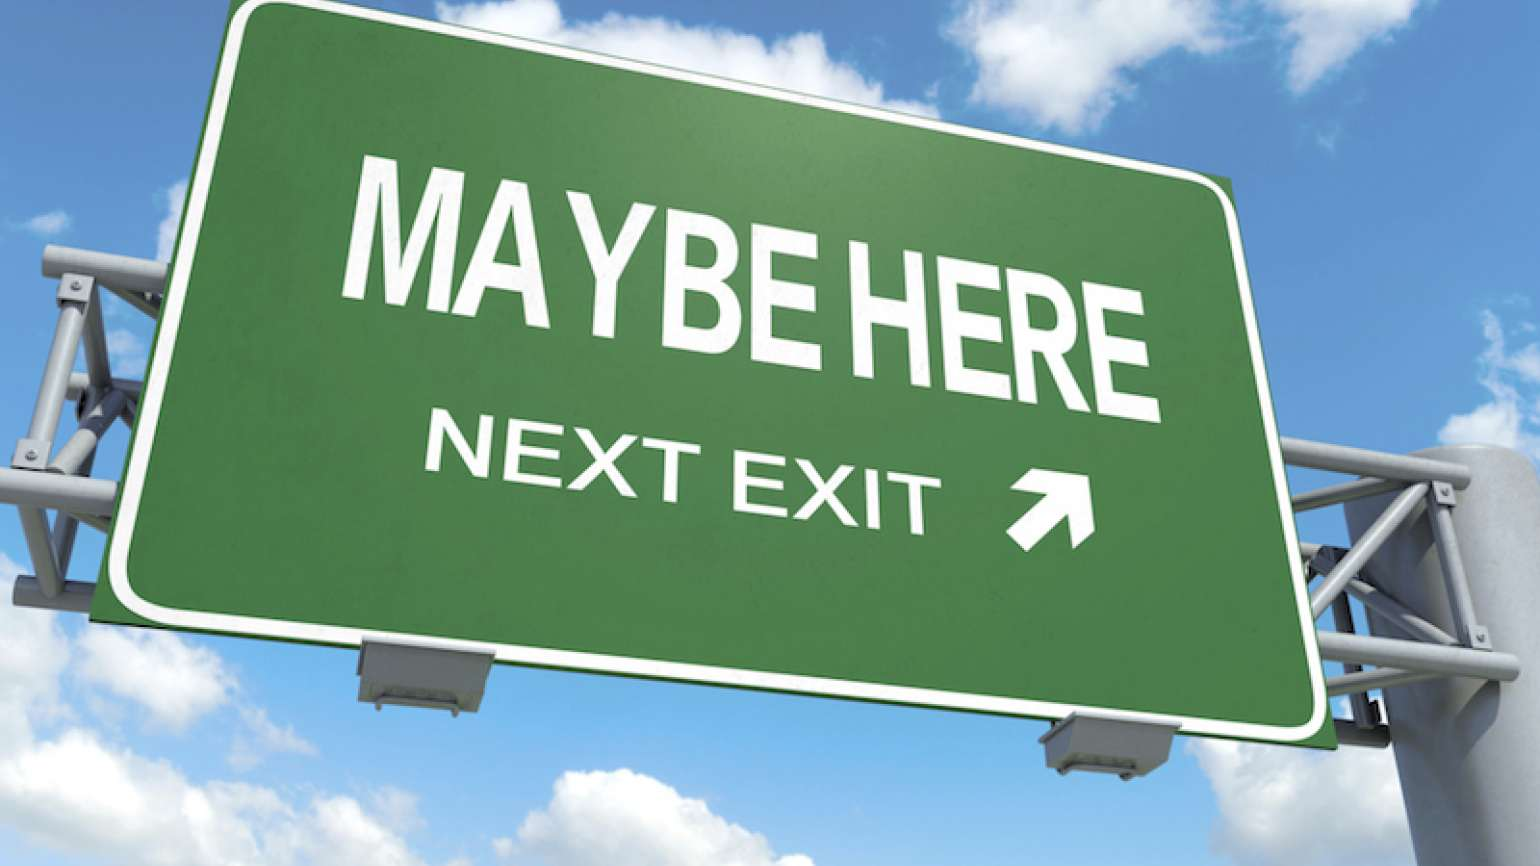 Highway sign Wrong Turn? Trust God Positioning System Guideposts